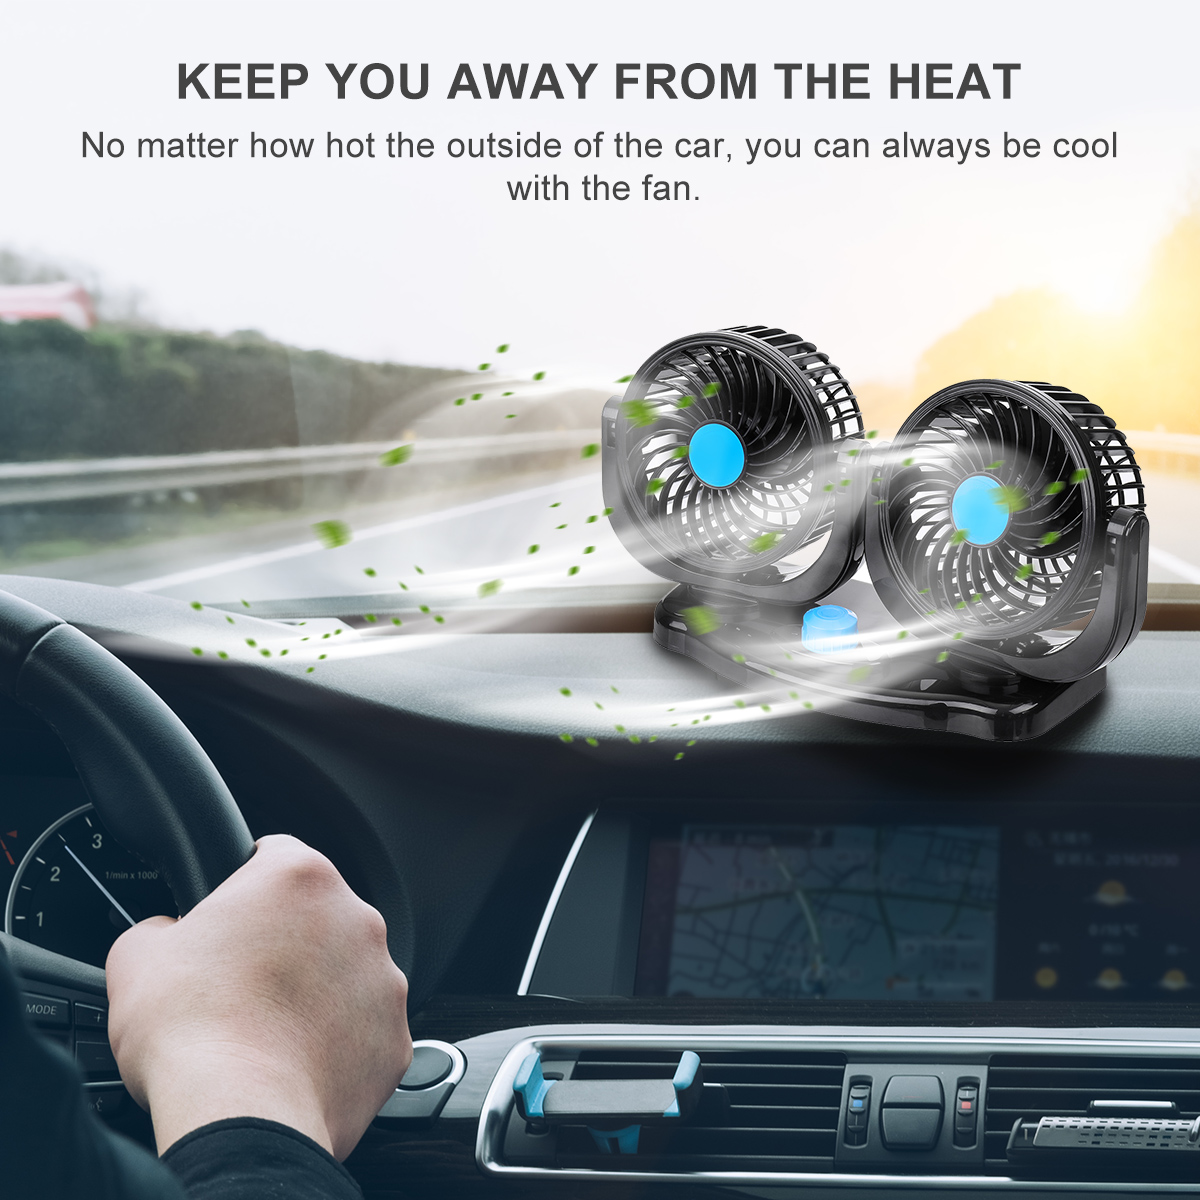 12V/24V 360 Degree All-Round Adjustable Car Auto Air Cooling Dual Head Fan Low Noise Car Auto Cooling Air Fan Car Accessor 3 type air cooling clip fan or 360 degree rotating 2 gears adjustable car fan or suction cup adsorption fans